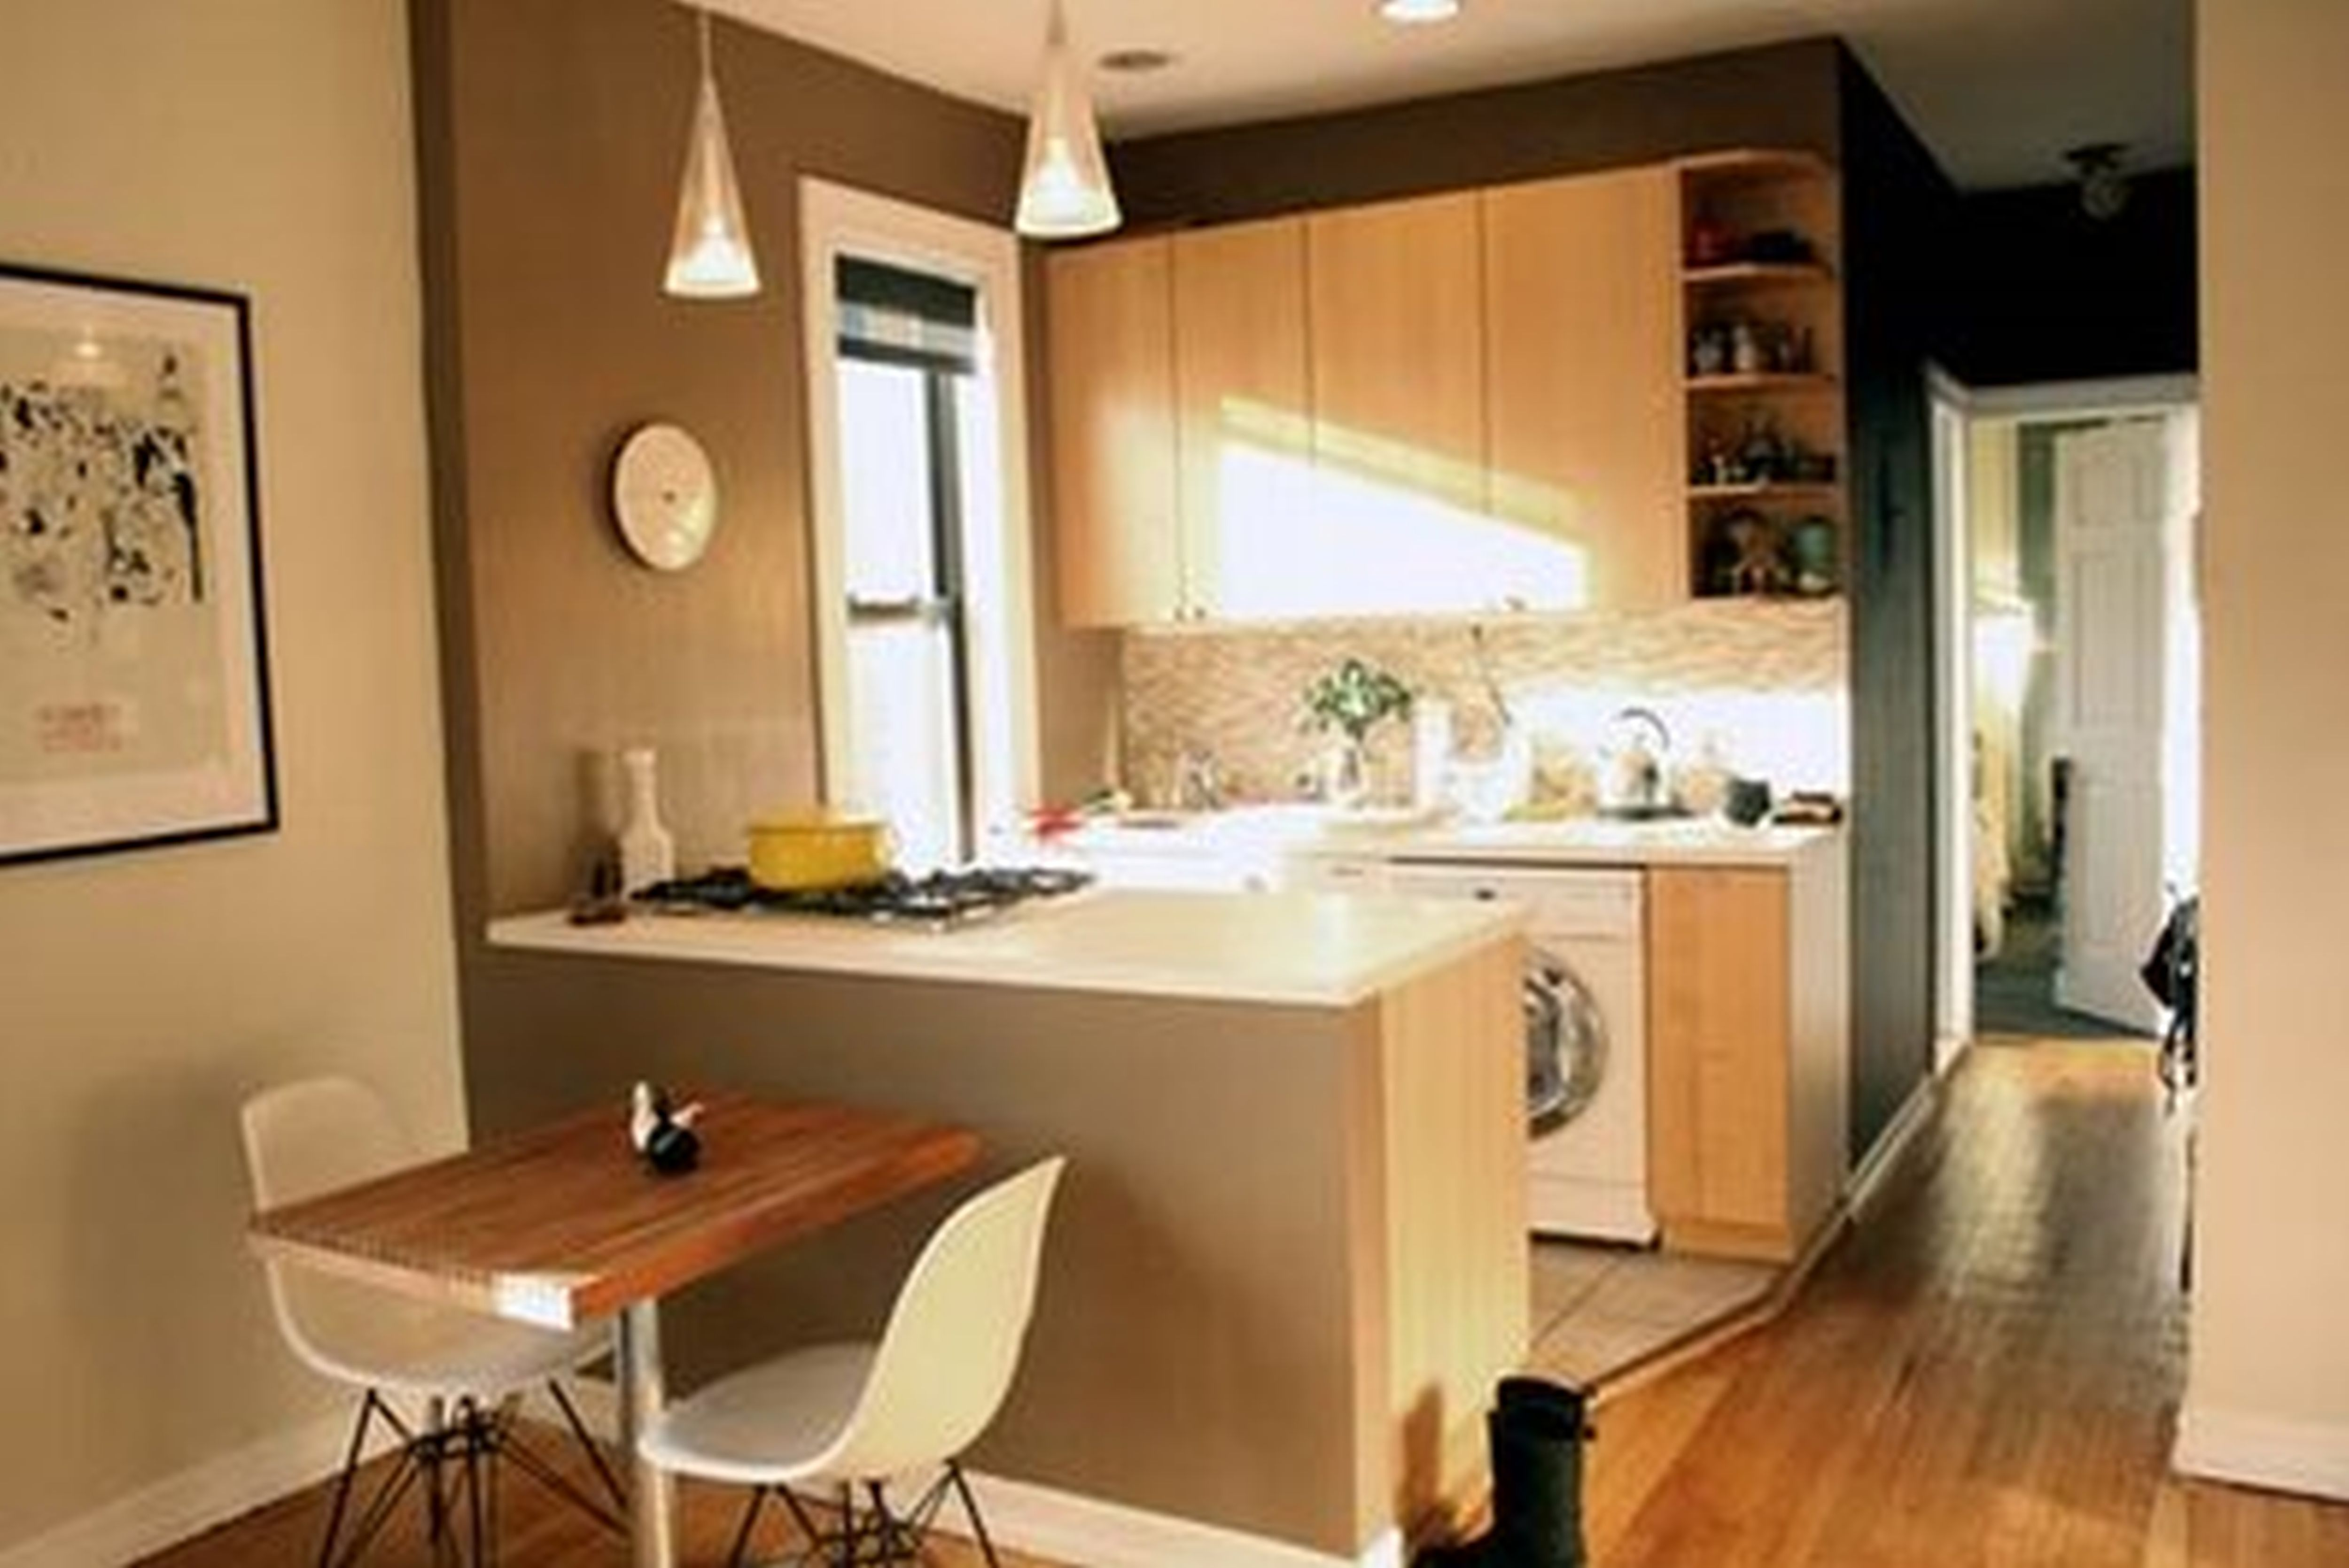 Small Apartment Ideas for Kitchen and Dining Room with Wooden Table and White Chairs near Oak Counter